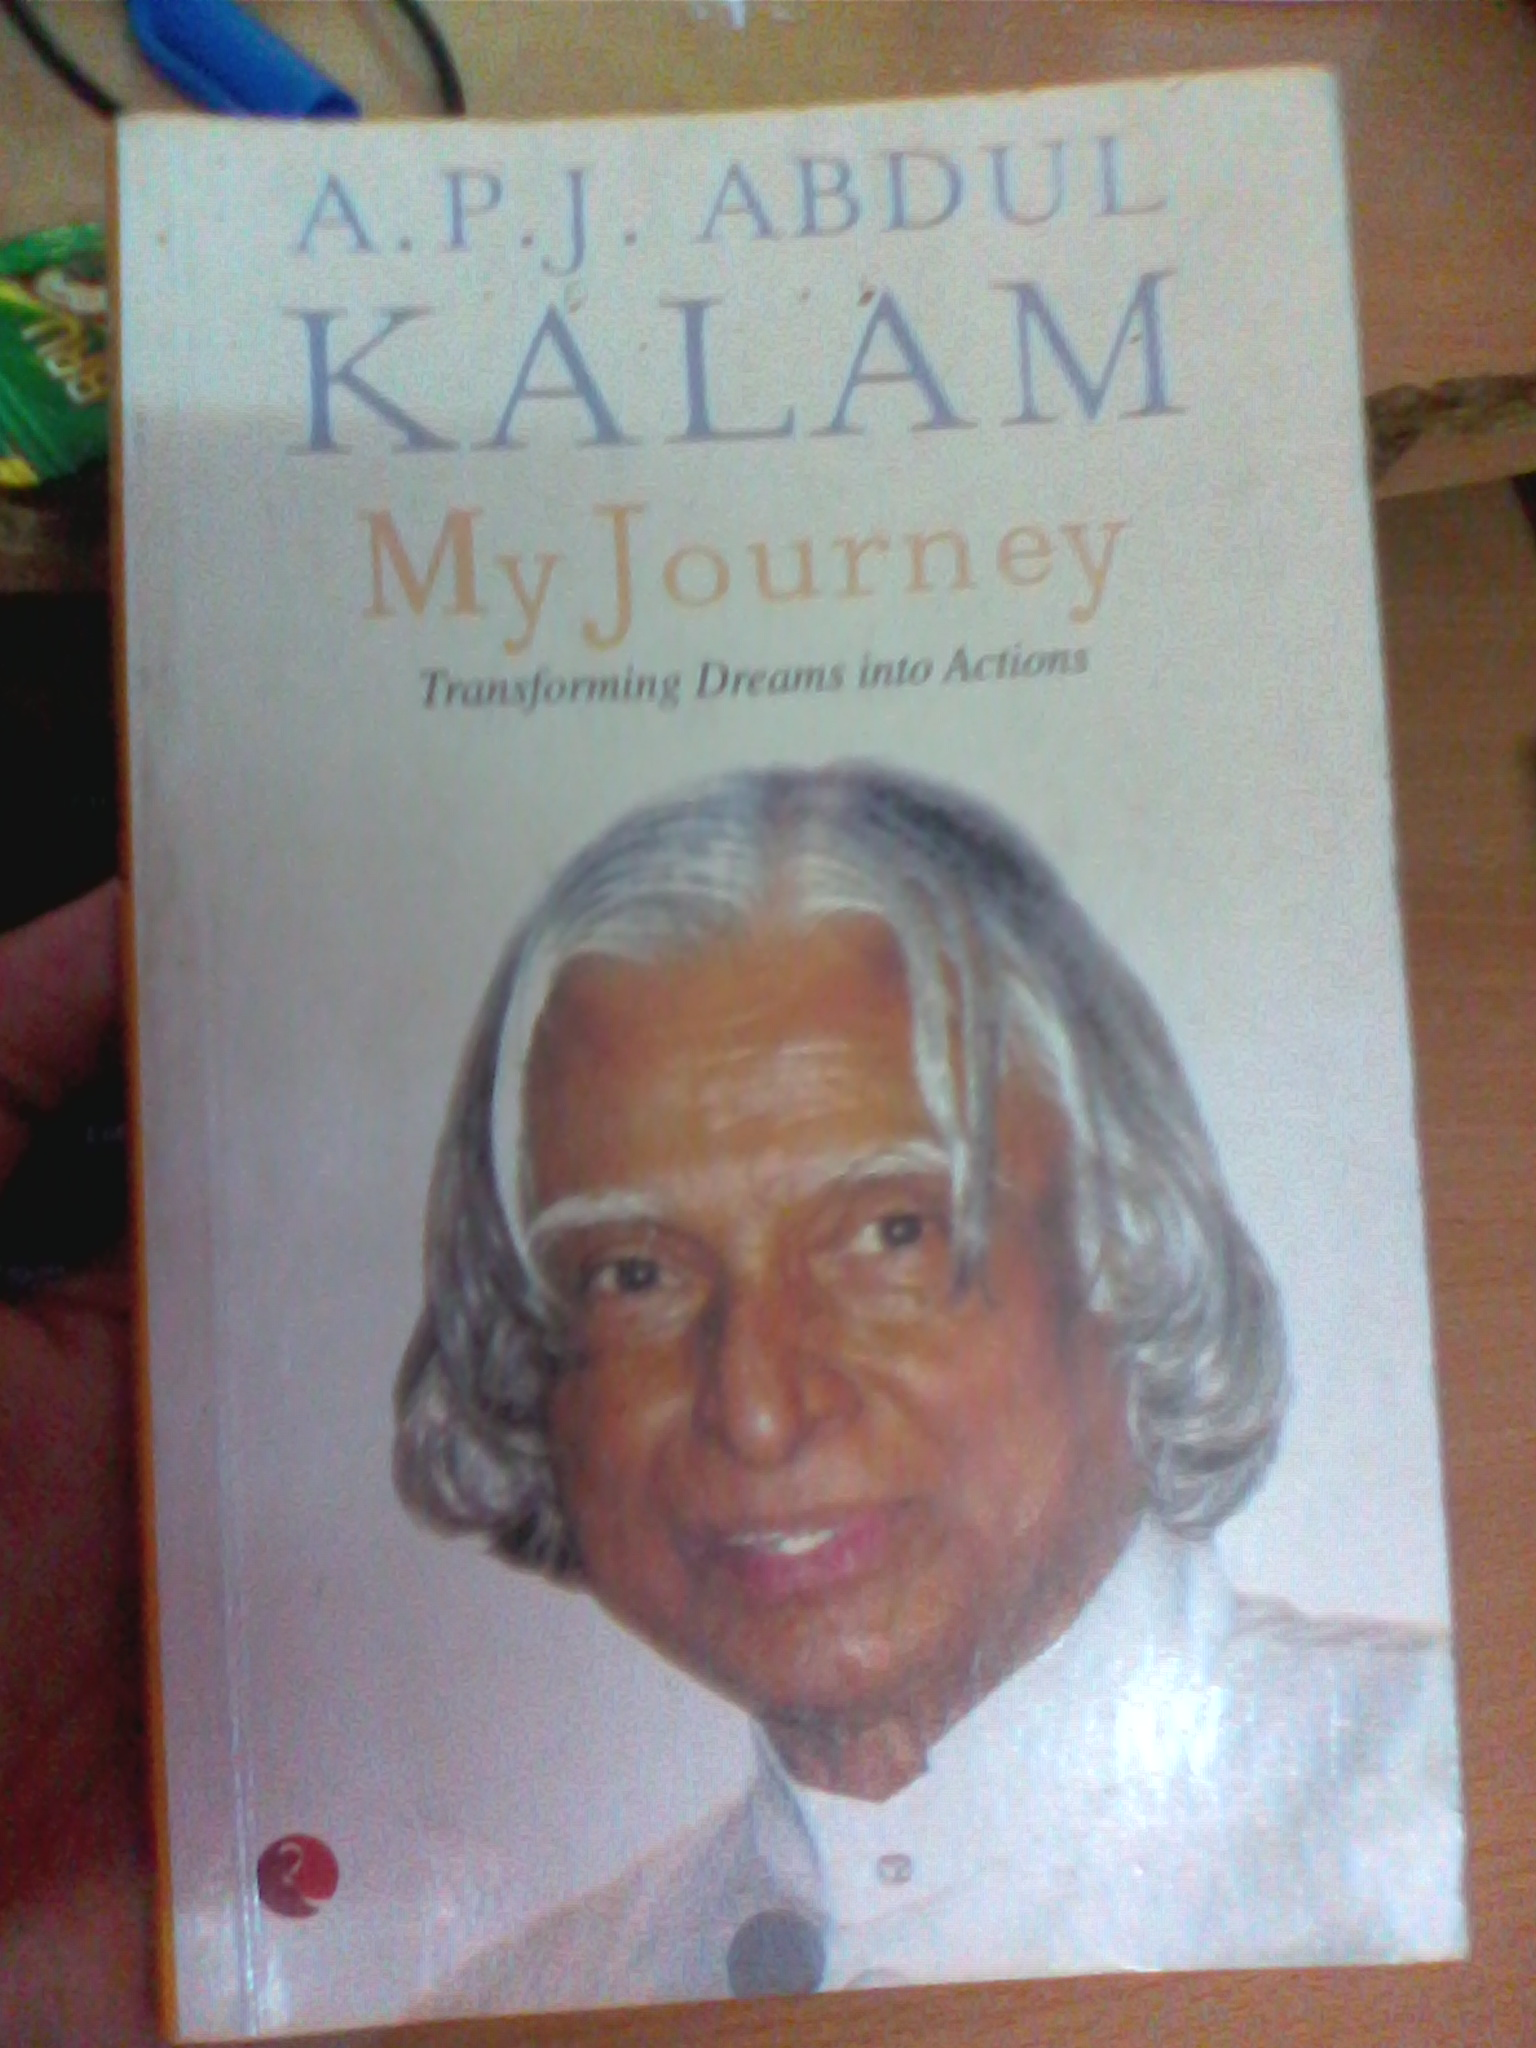 True Inspirational Book For All My Journey Transforming Dreams